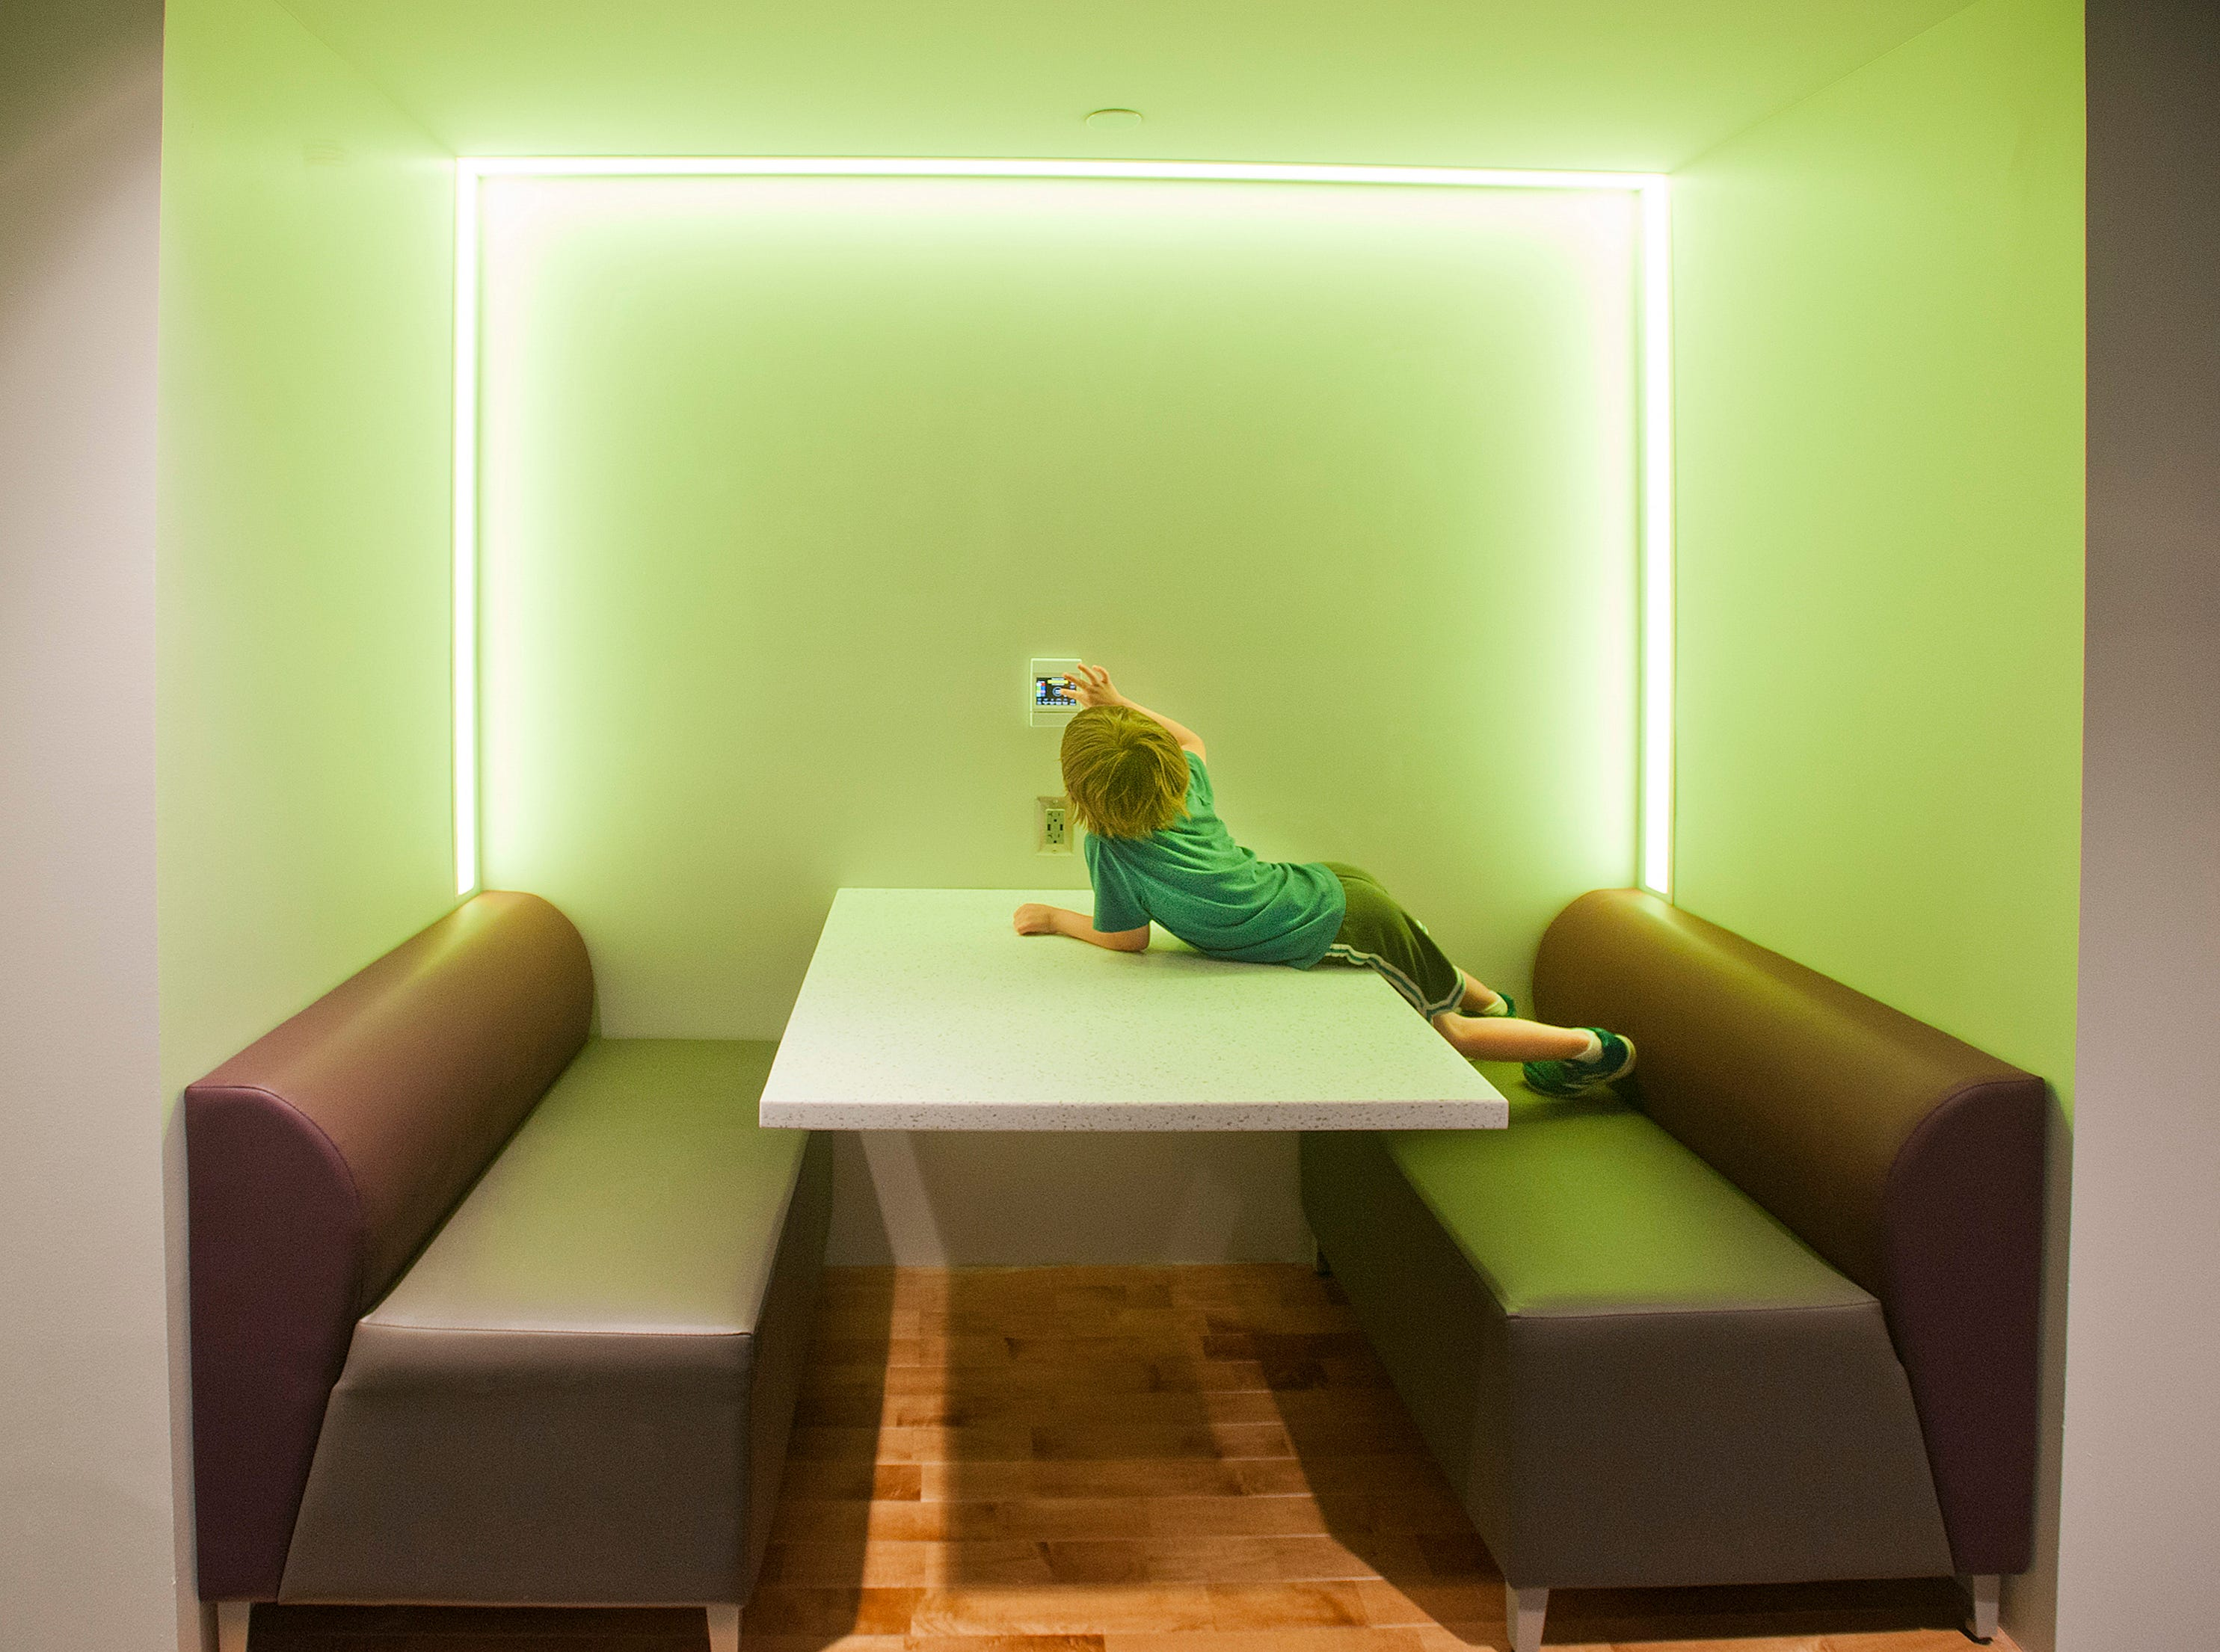 Julia Heidinger, 4, of St. Matthews, plays with a light control panel in the new teen section of the library. The control allows users in the alcove to program the lighting to the color of their choice or allow a gradual transition from color to color. May 9, 2019